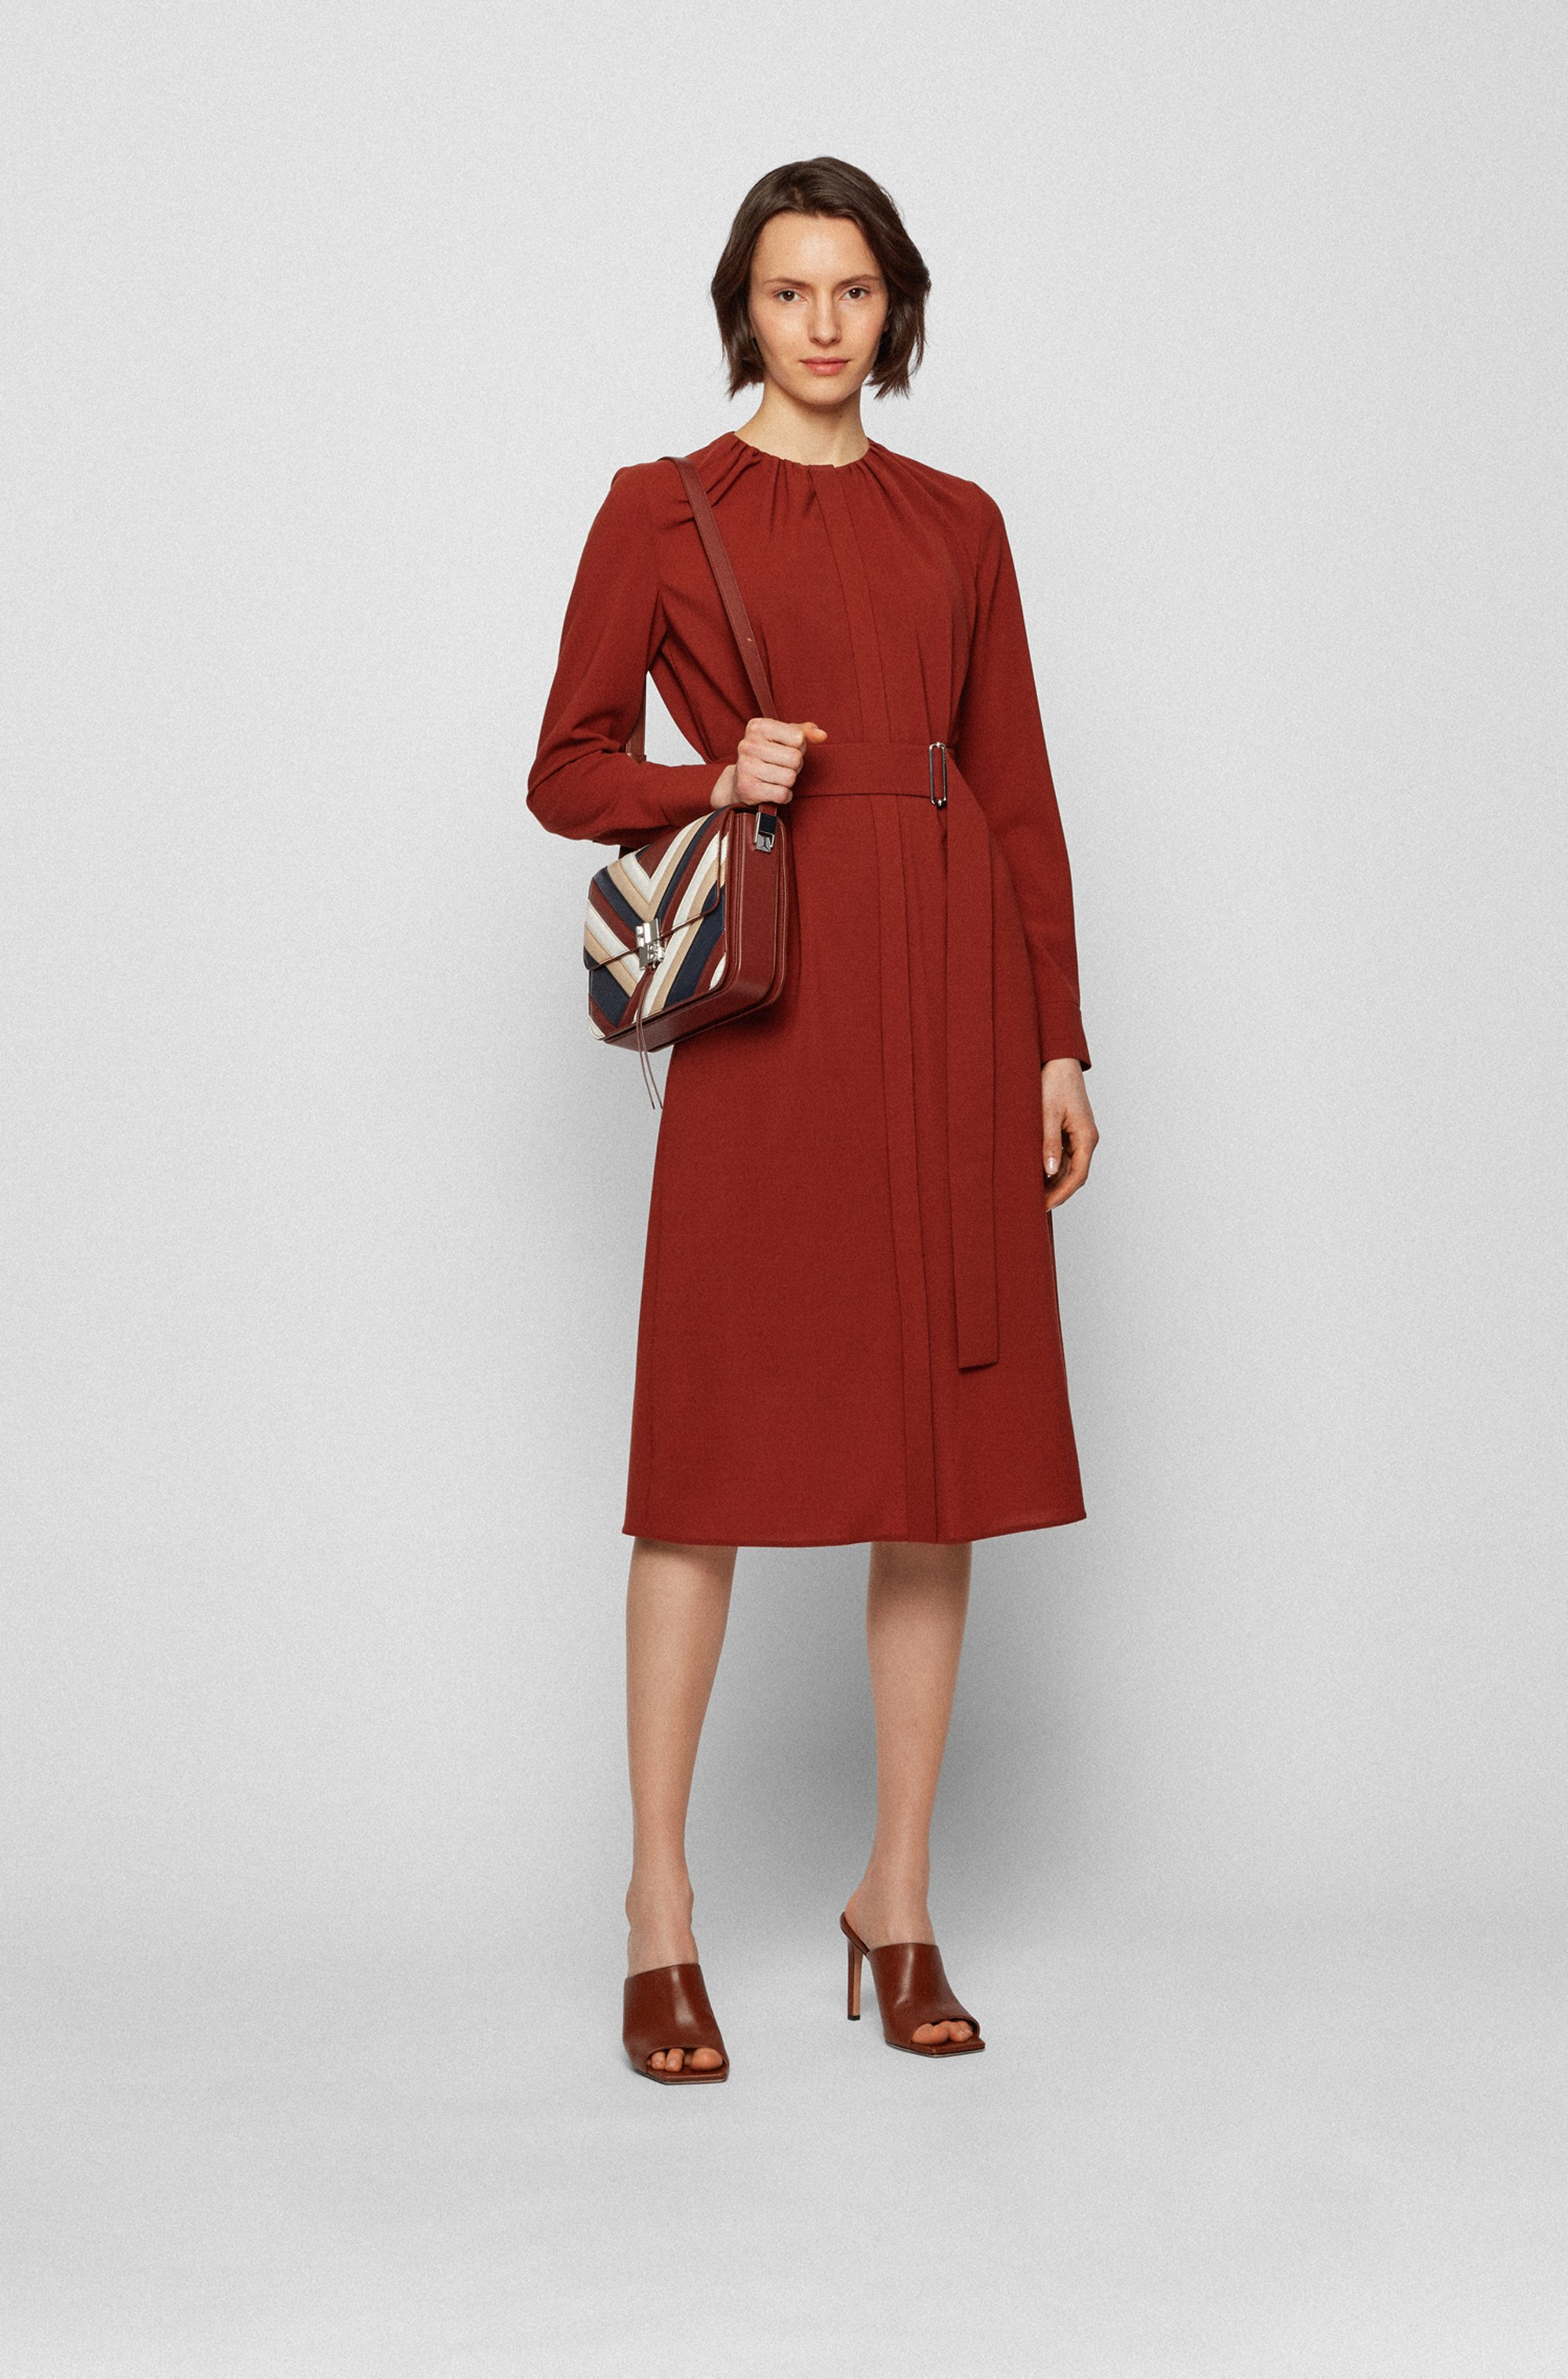 Long-sleeved wool-blend dress with gathered neckline